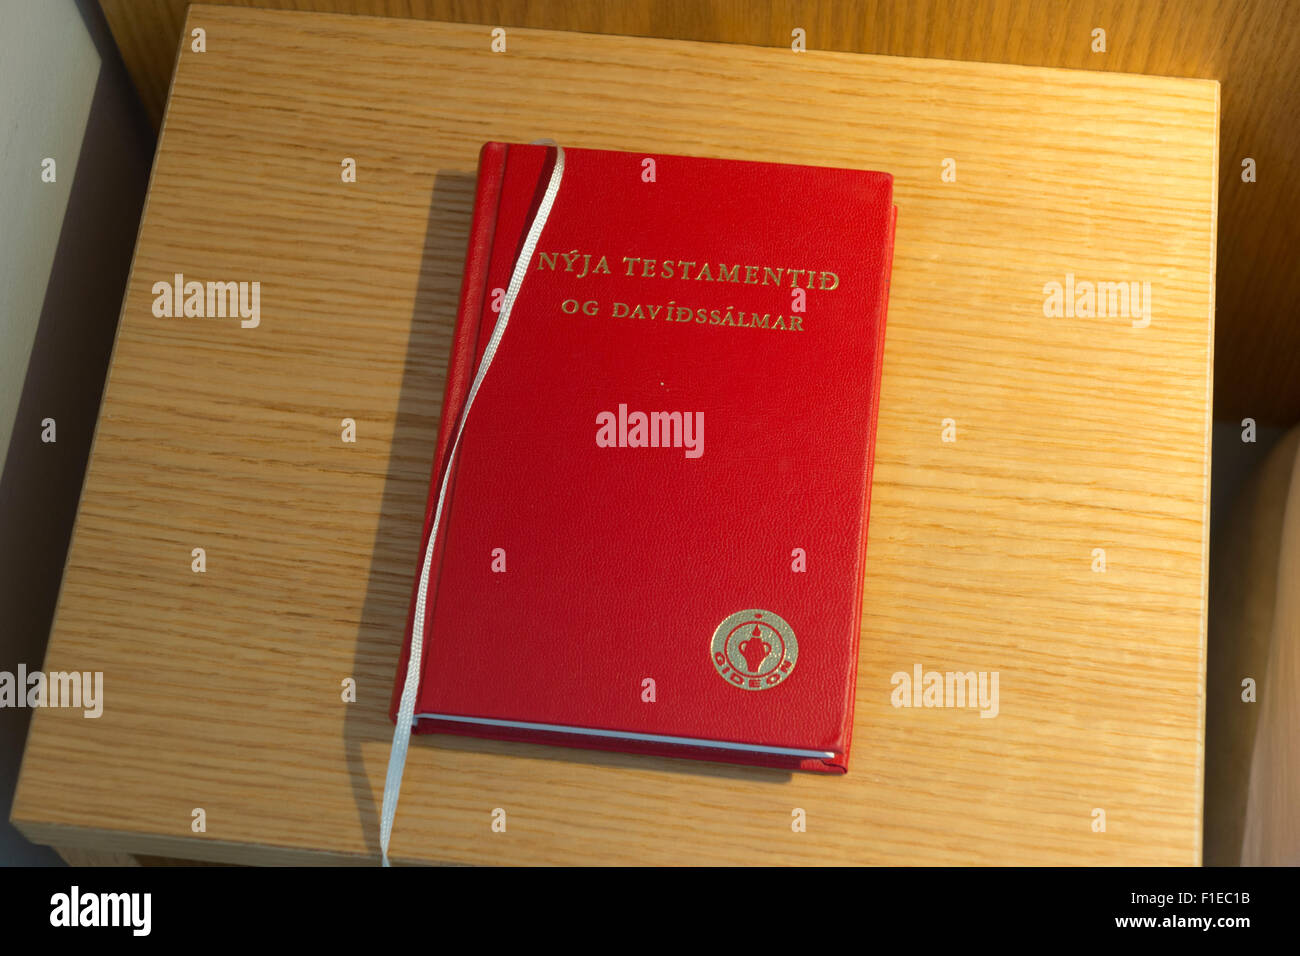 An Icelandic version of a Gideon's Bible in a hotel room in Egilsstadir, Iceland - Stock Image